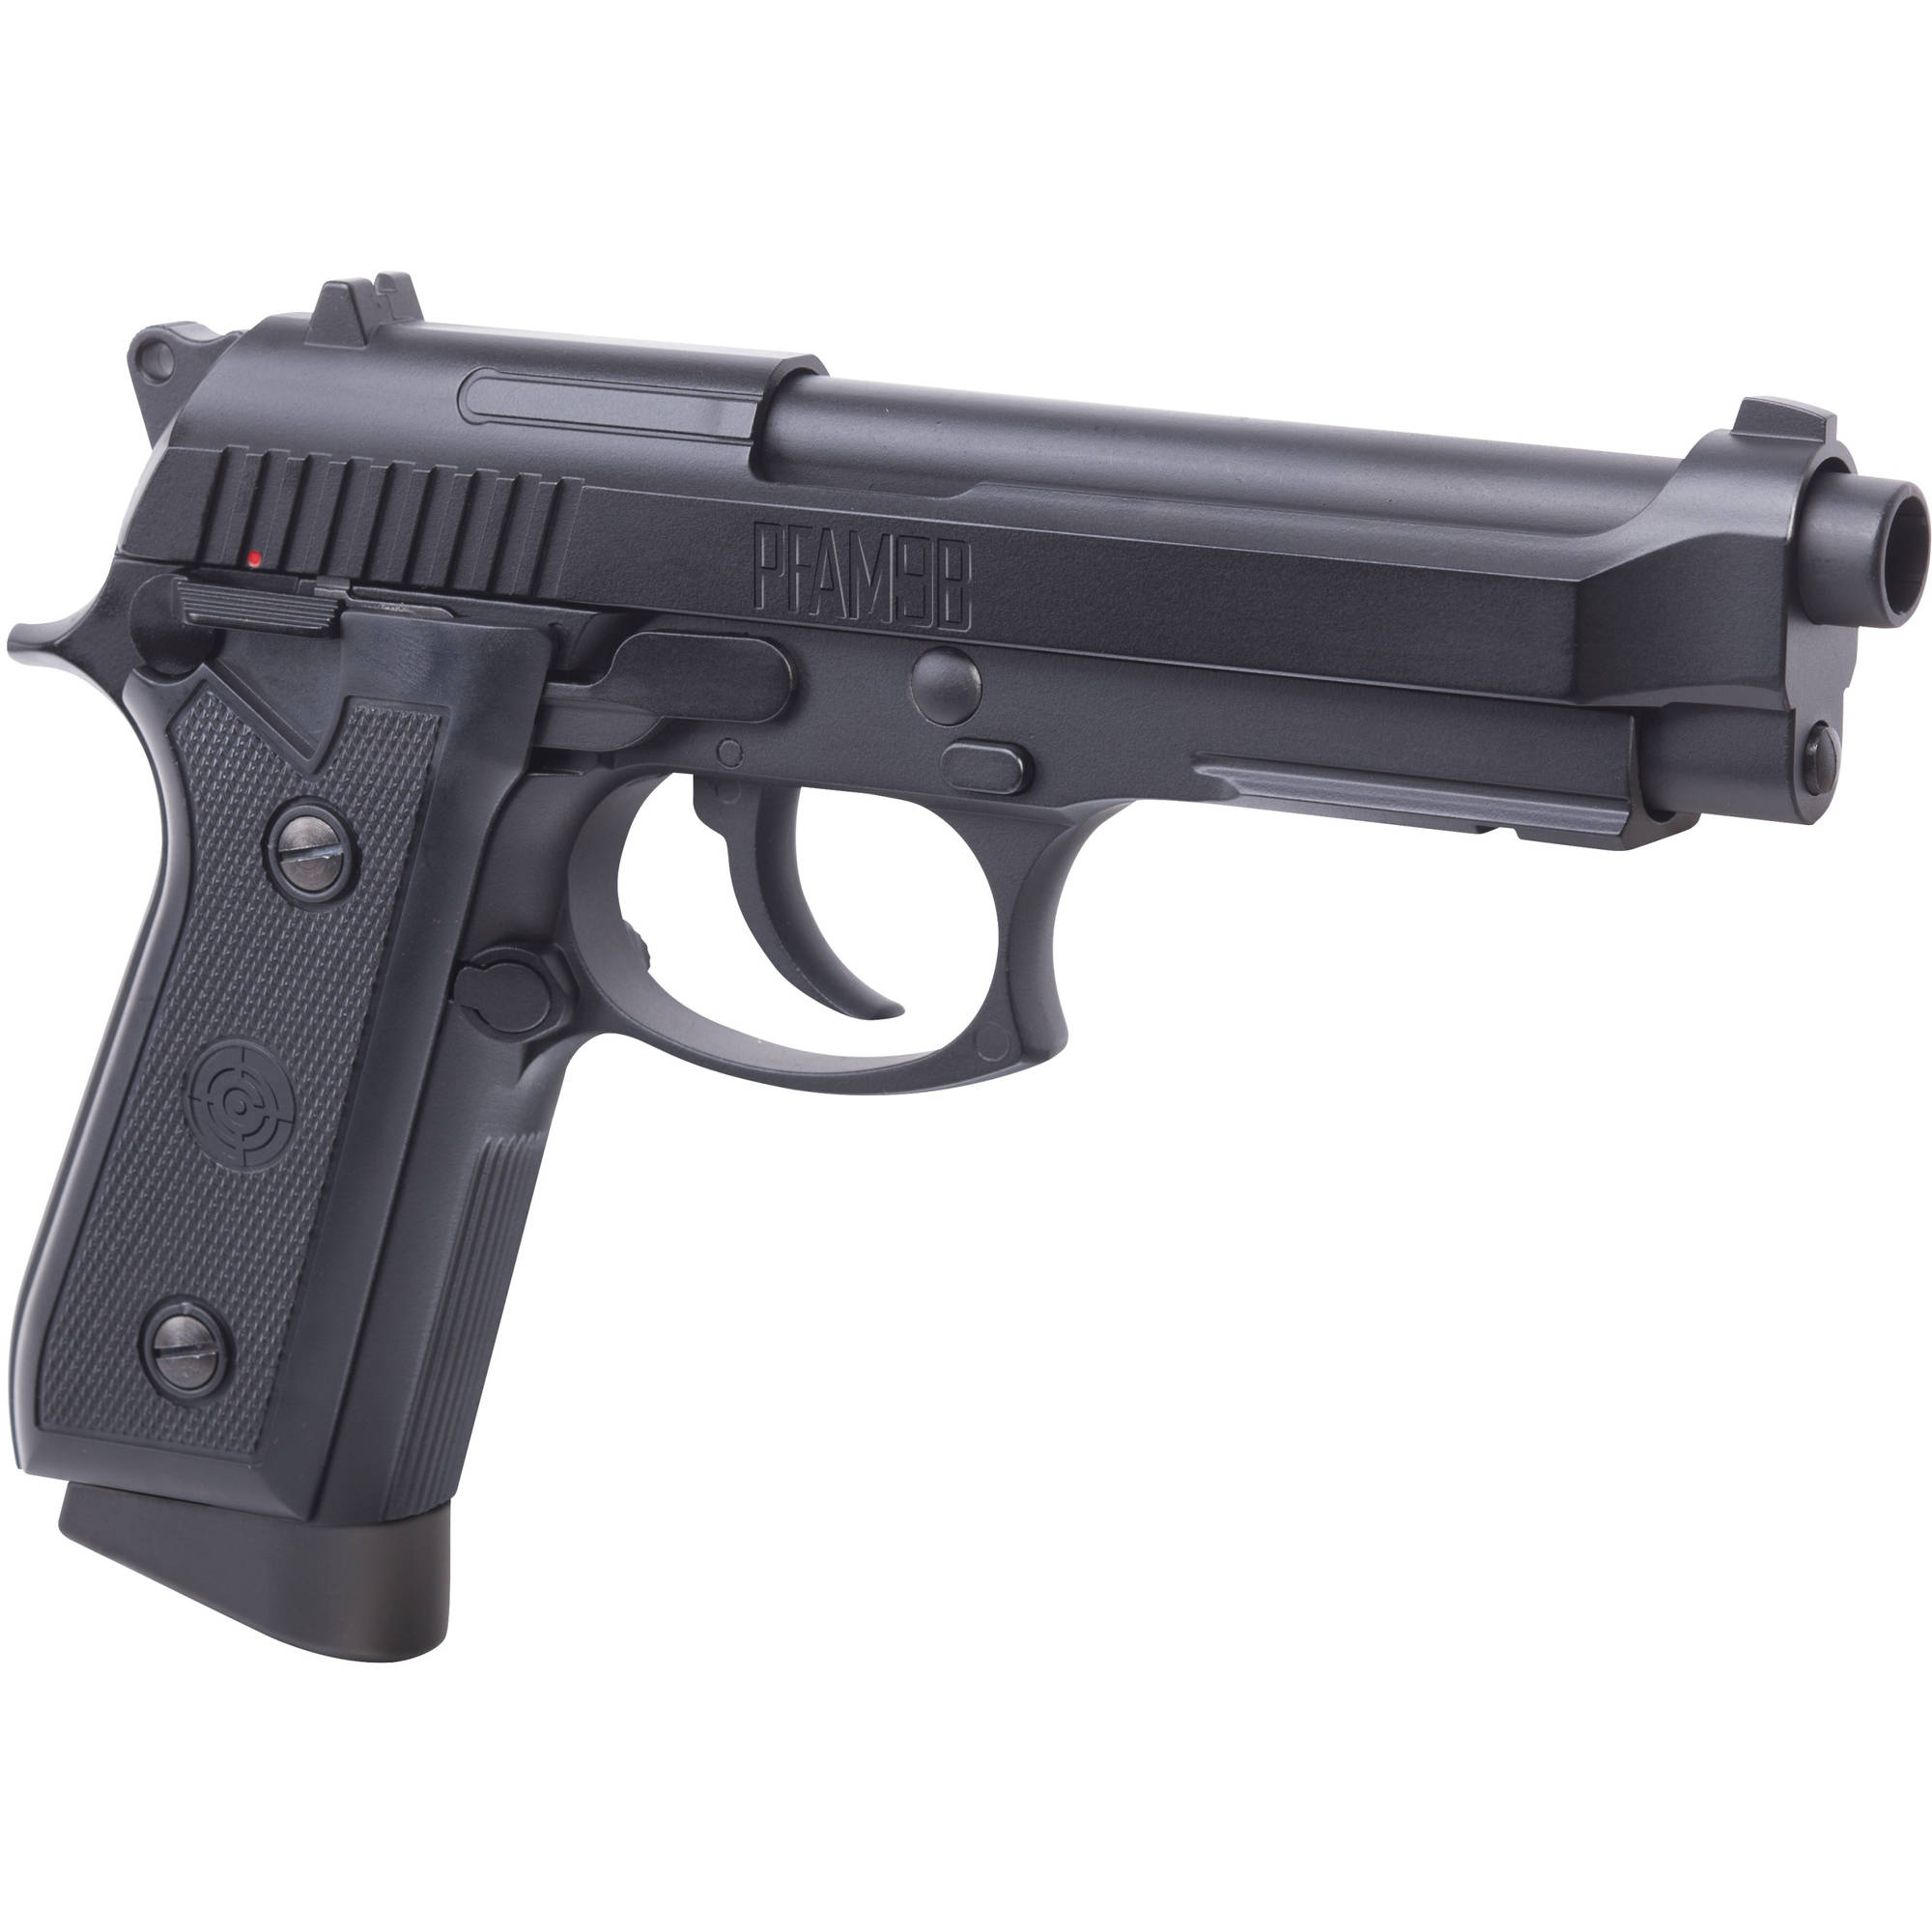 Crosman PFAM9B Full Metal Blowback .177 Caliber Full/Semi-Auto CO2 Air Pistol